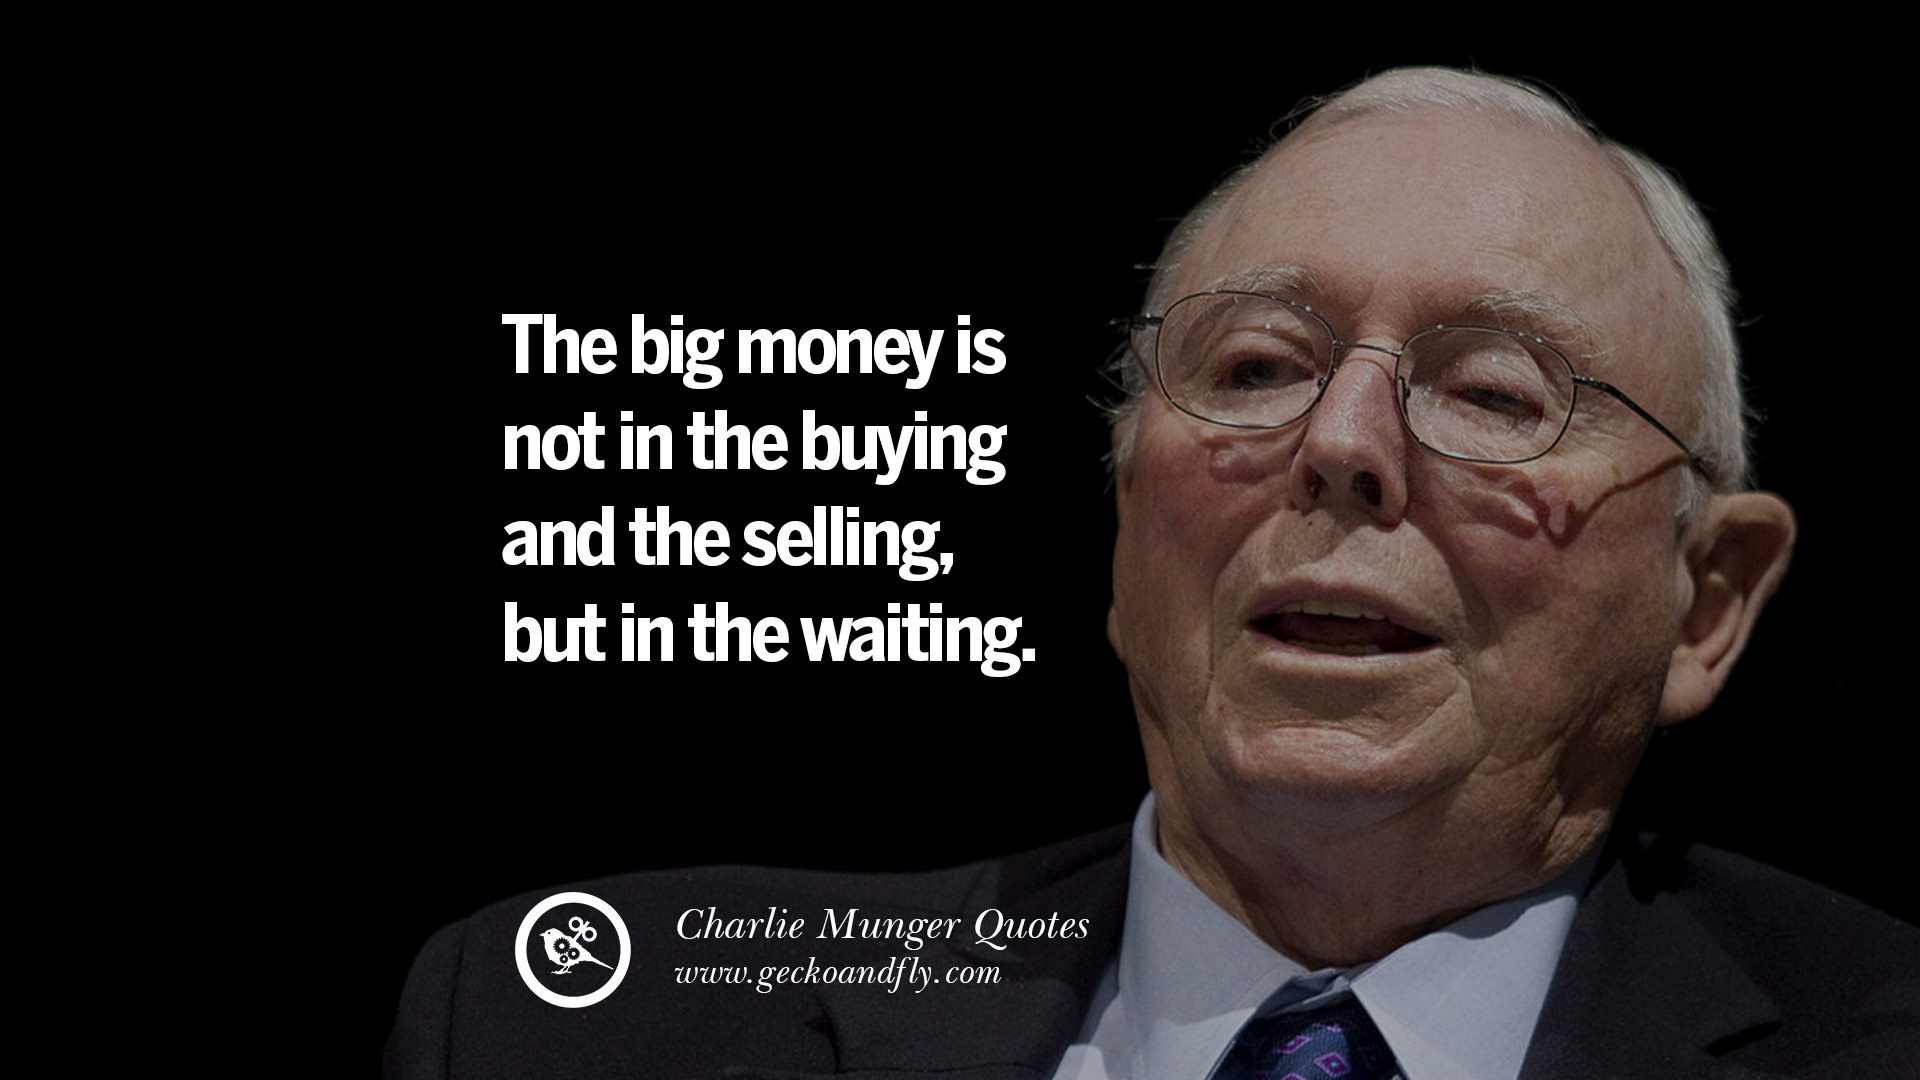 Wall Street Quotes 18 Brilliant Charlie Munger Quotes On Wall Street And Investment